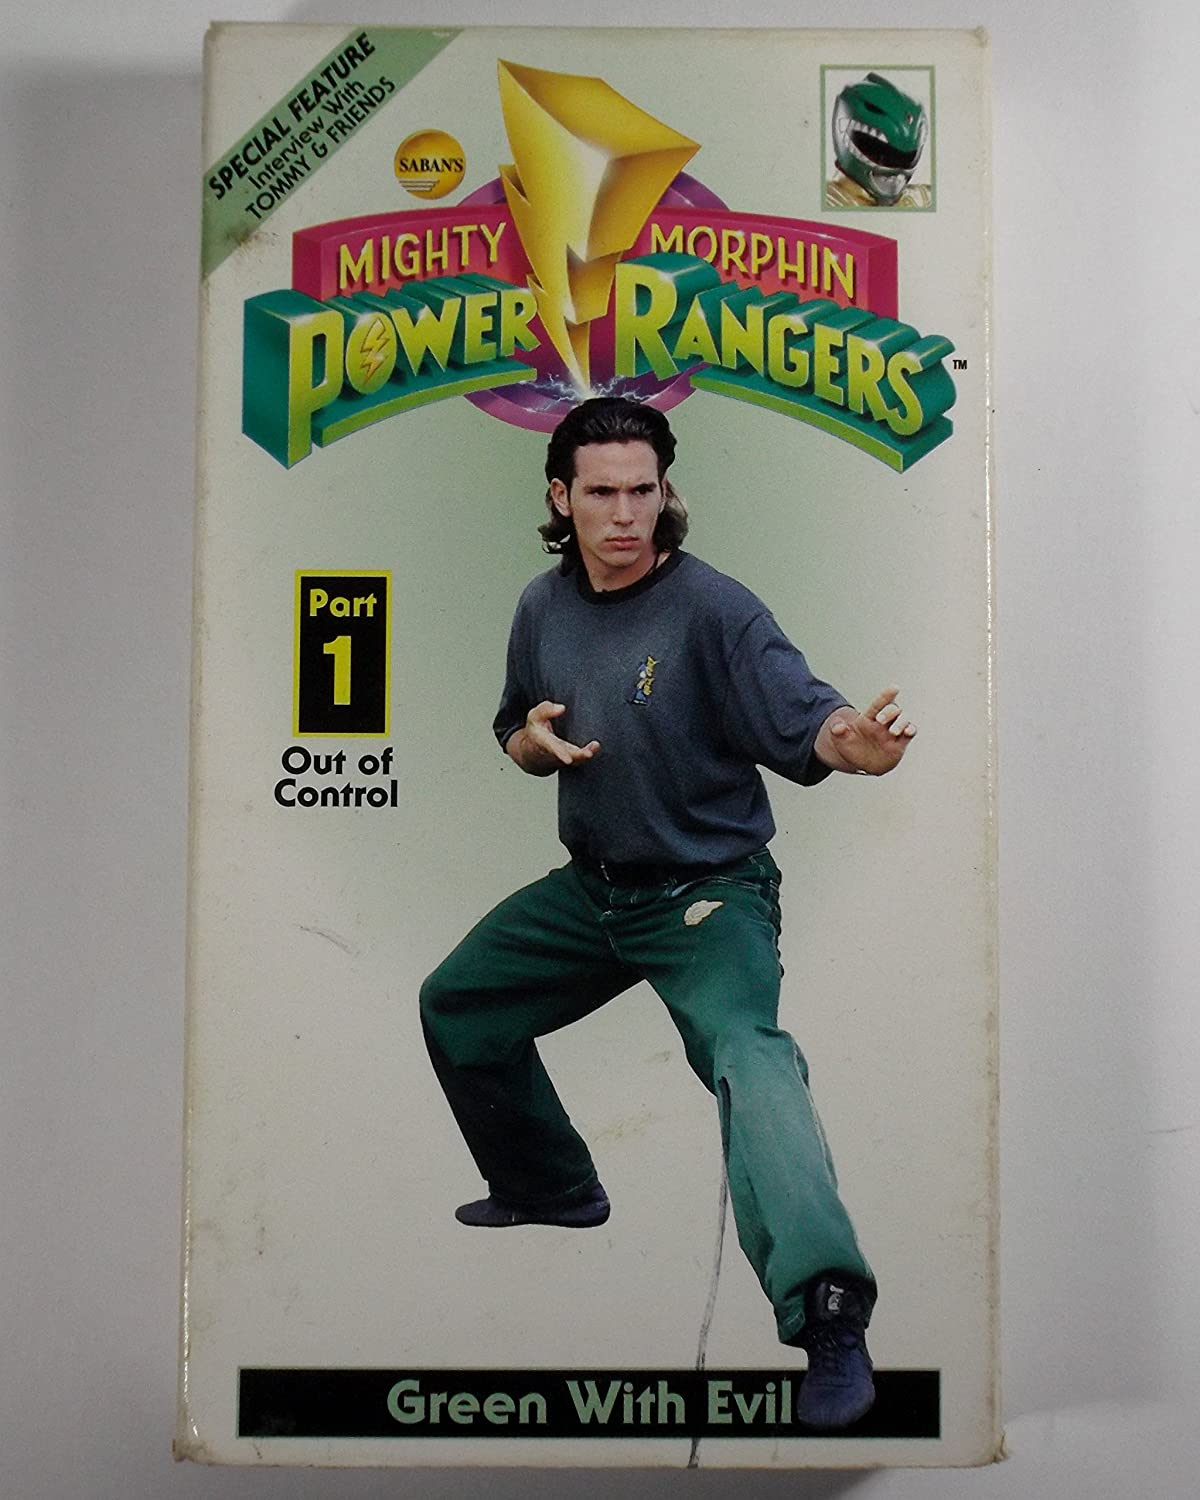 Amazon.com: Mighty Morphin Power Rangers: Green With Evil Part 1 Out of  Control/ TV Show [VHS]: Schrier, Paul, Blizek, John, Blyth, David,  Bronaugh, Vickie, Carr, Adrian, Florentine, Isaac, Garabidian, Armand,  Garibaldi, Marco,